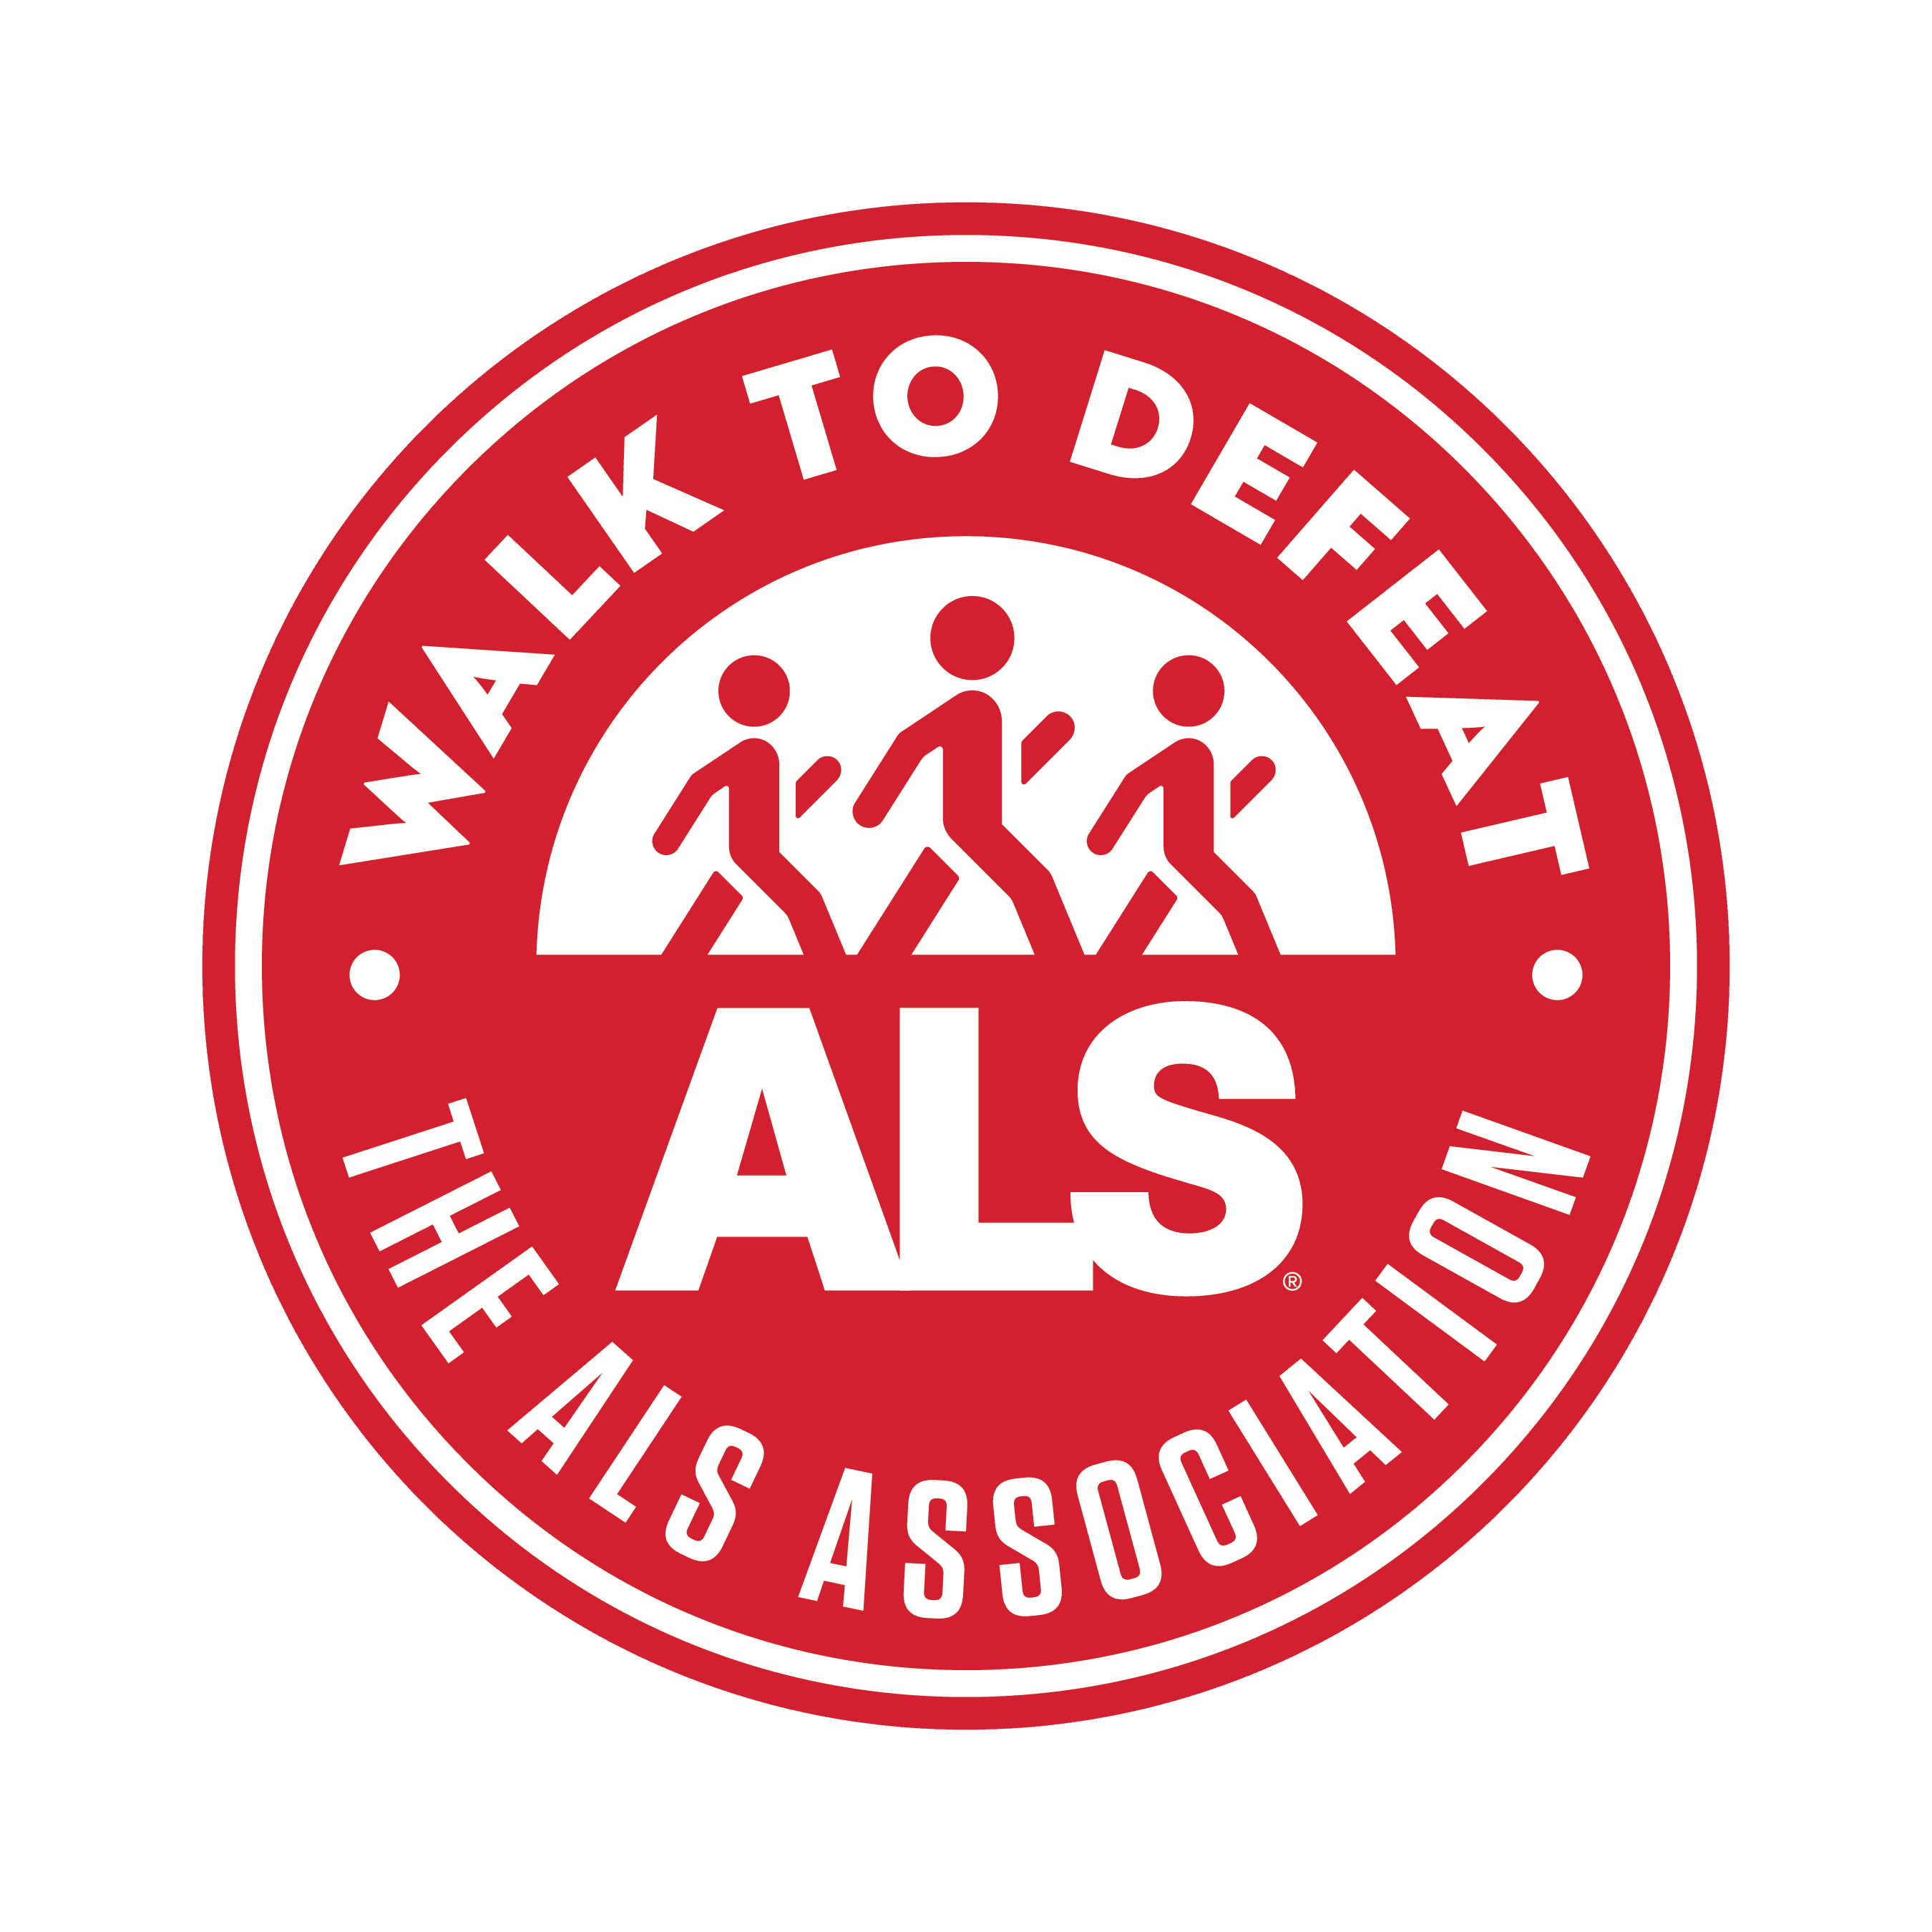 2019 Midlands Walk To Defeat ALS AMYOTROPHIC LATERAL